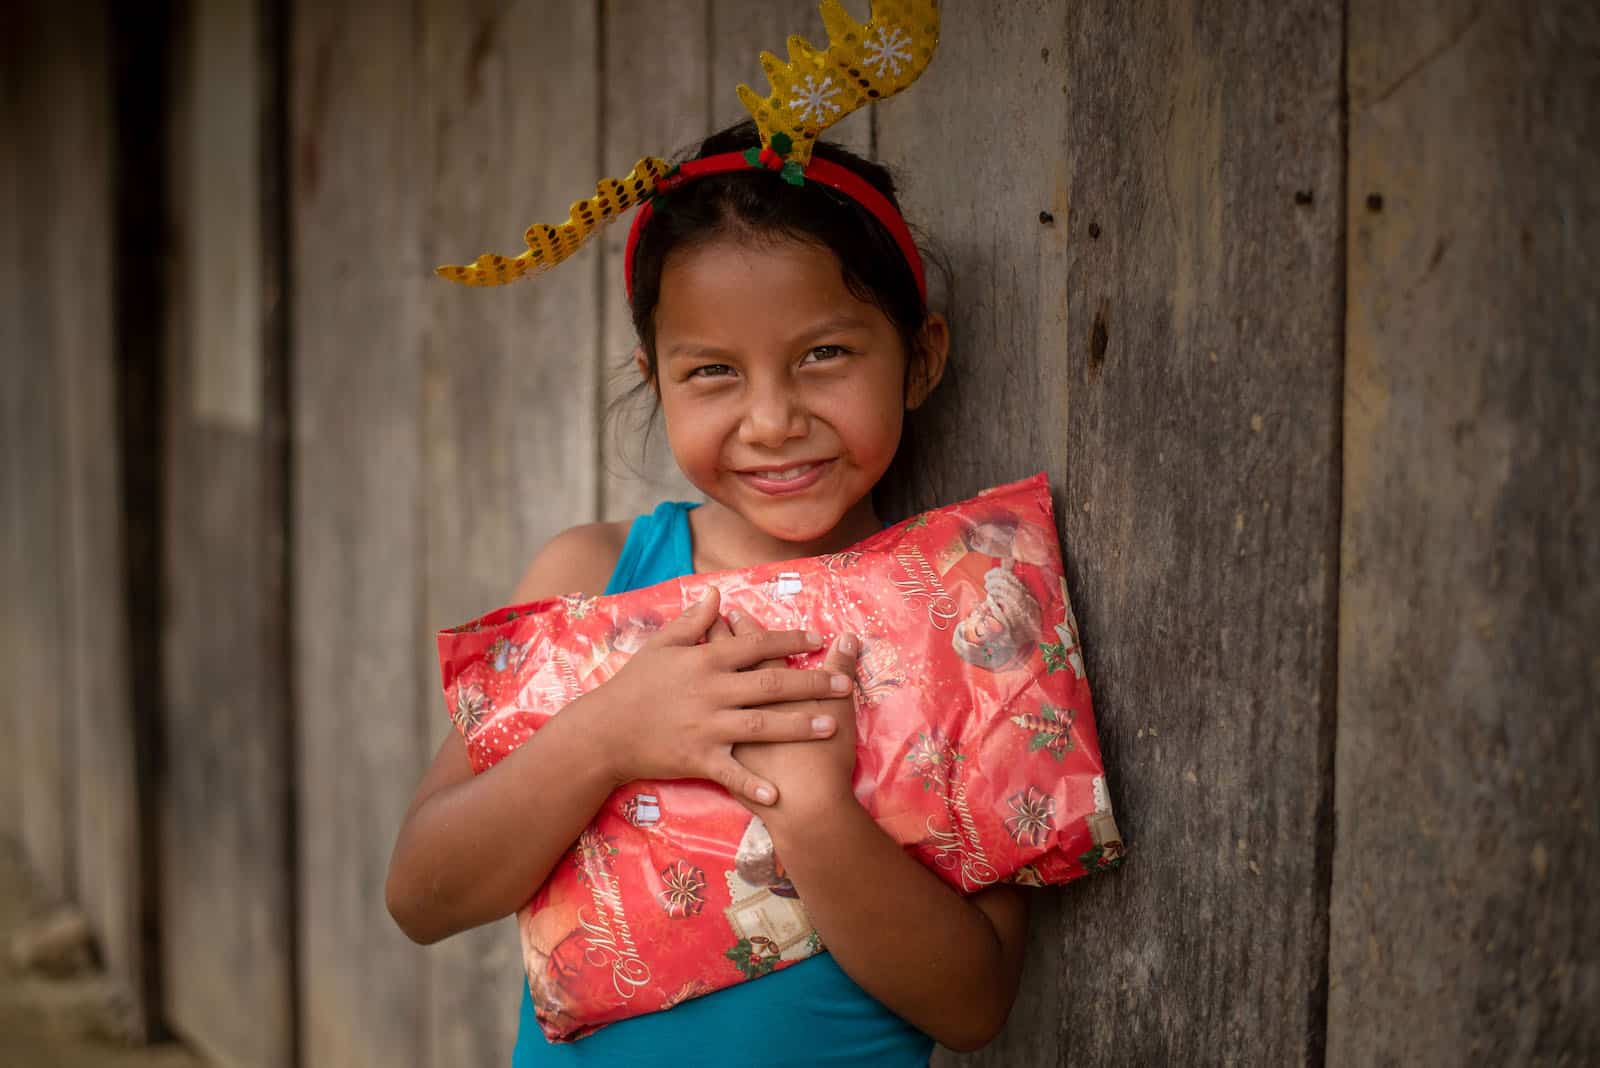 A little girl in Peru hugs a Christmas gift.